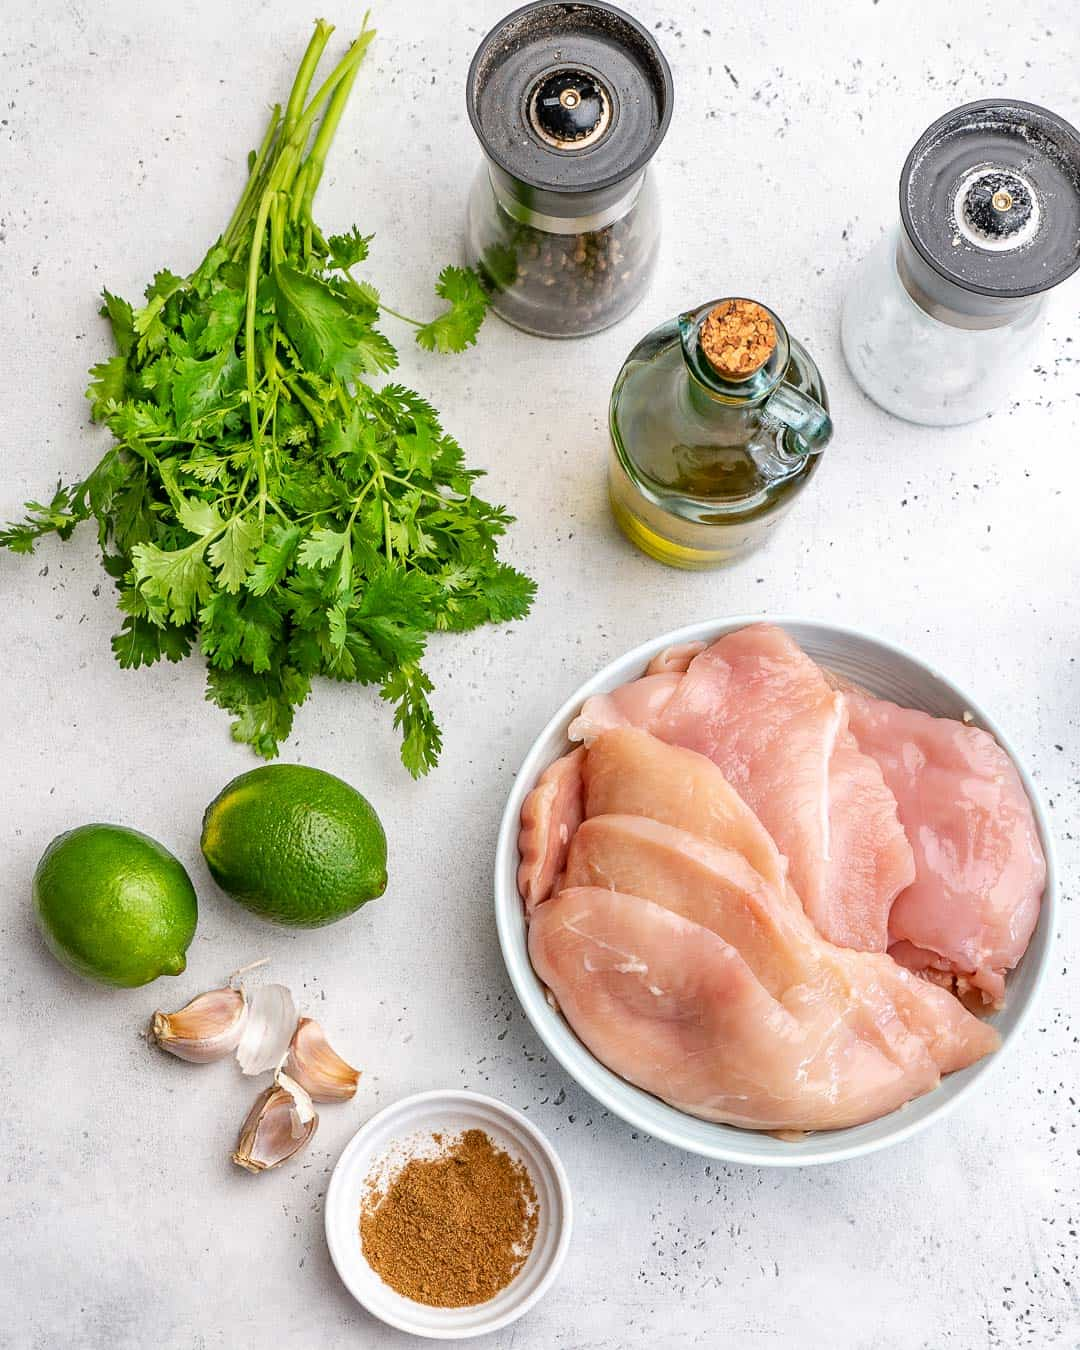 ingredients for Grilled Cilantro Lime Chicken